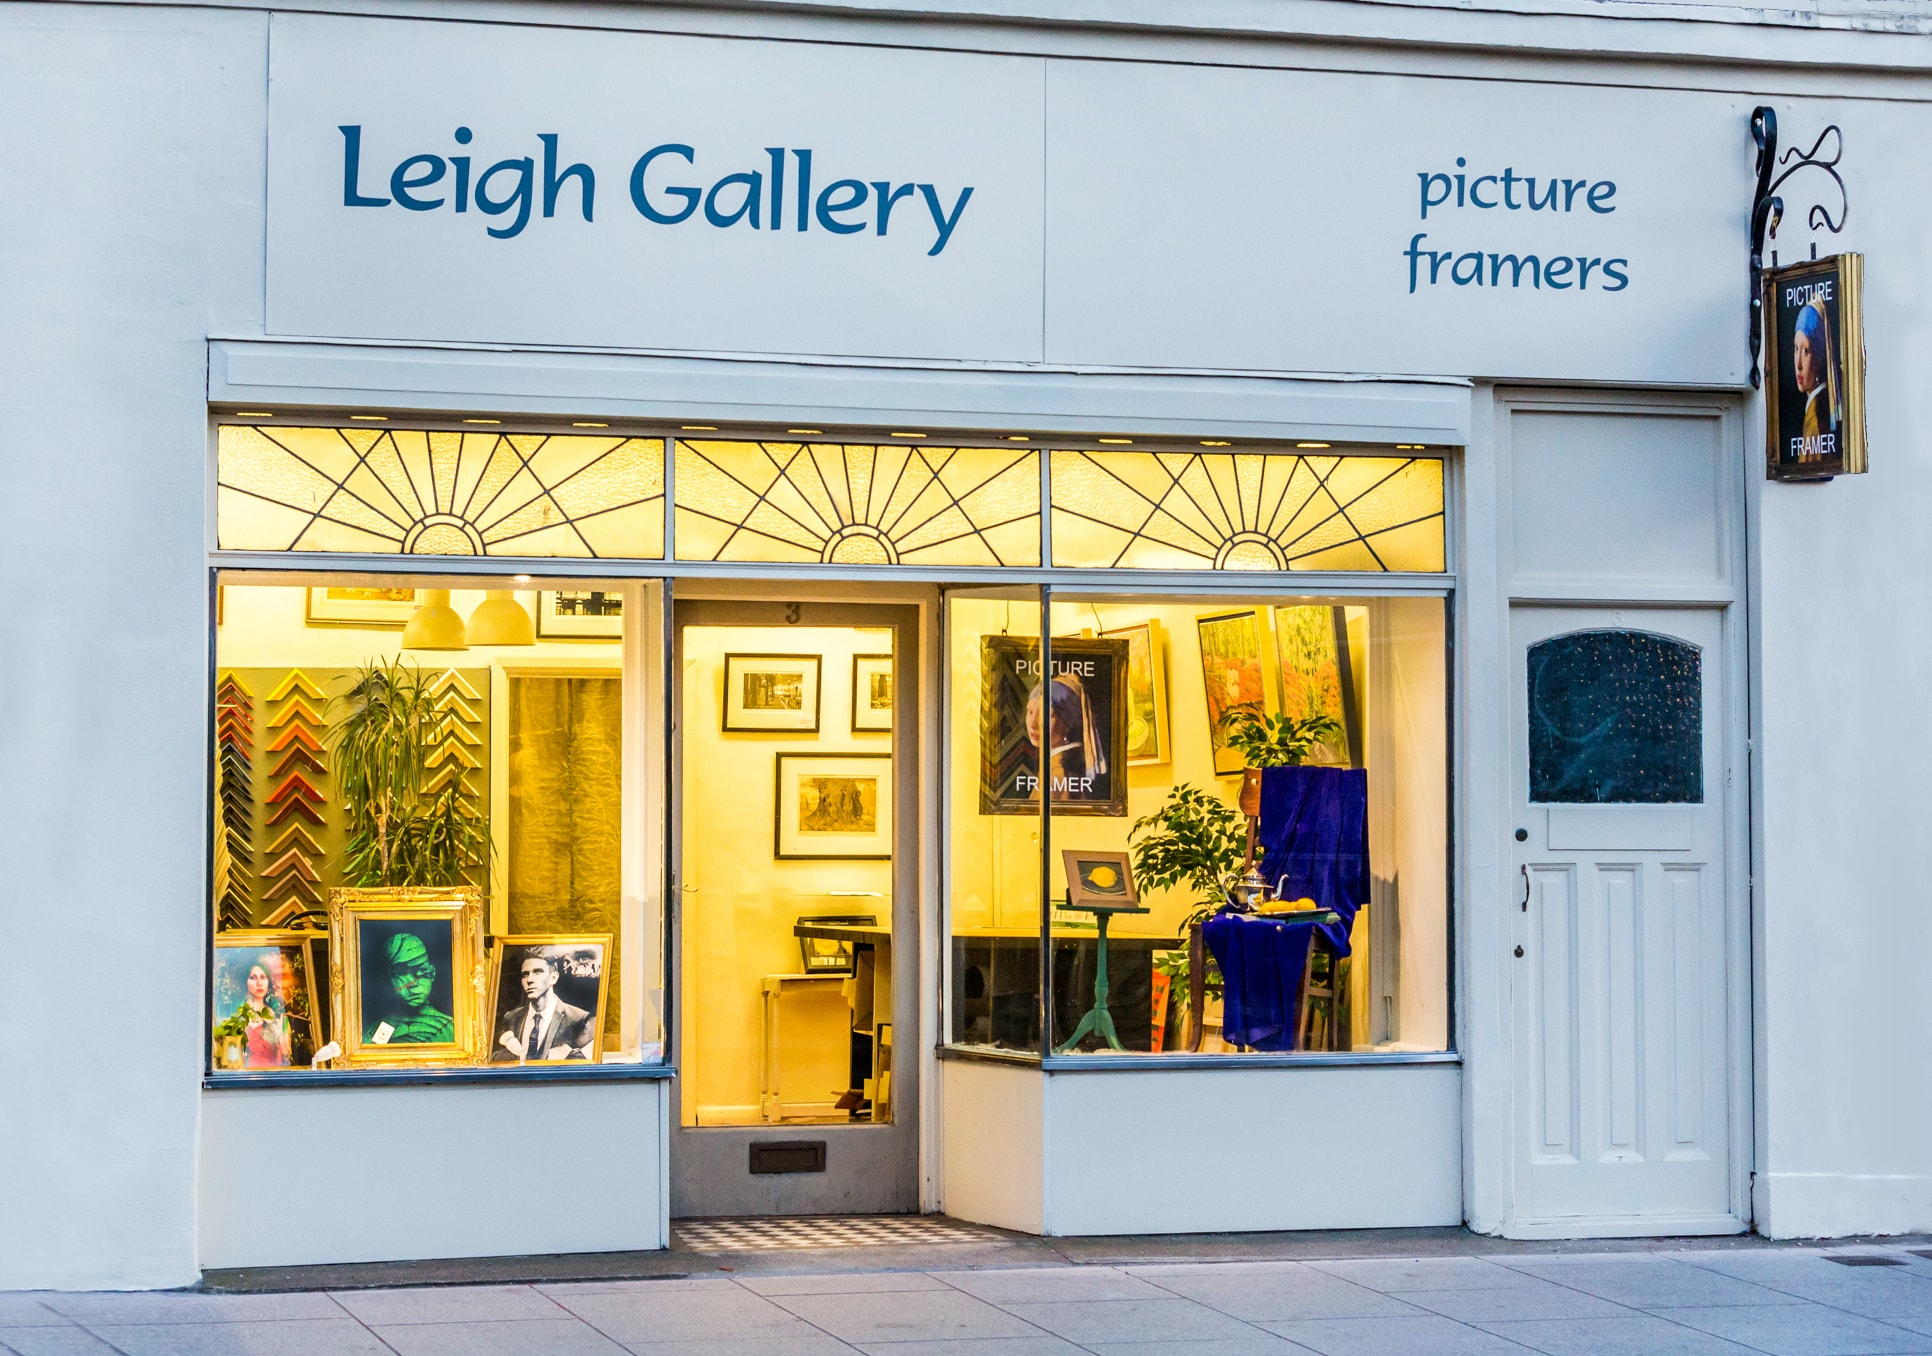 Leigh Gallery (3 - edited)-min.jpg